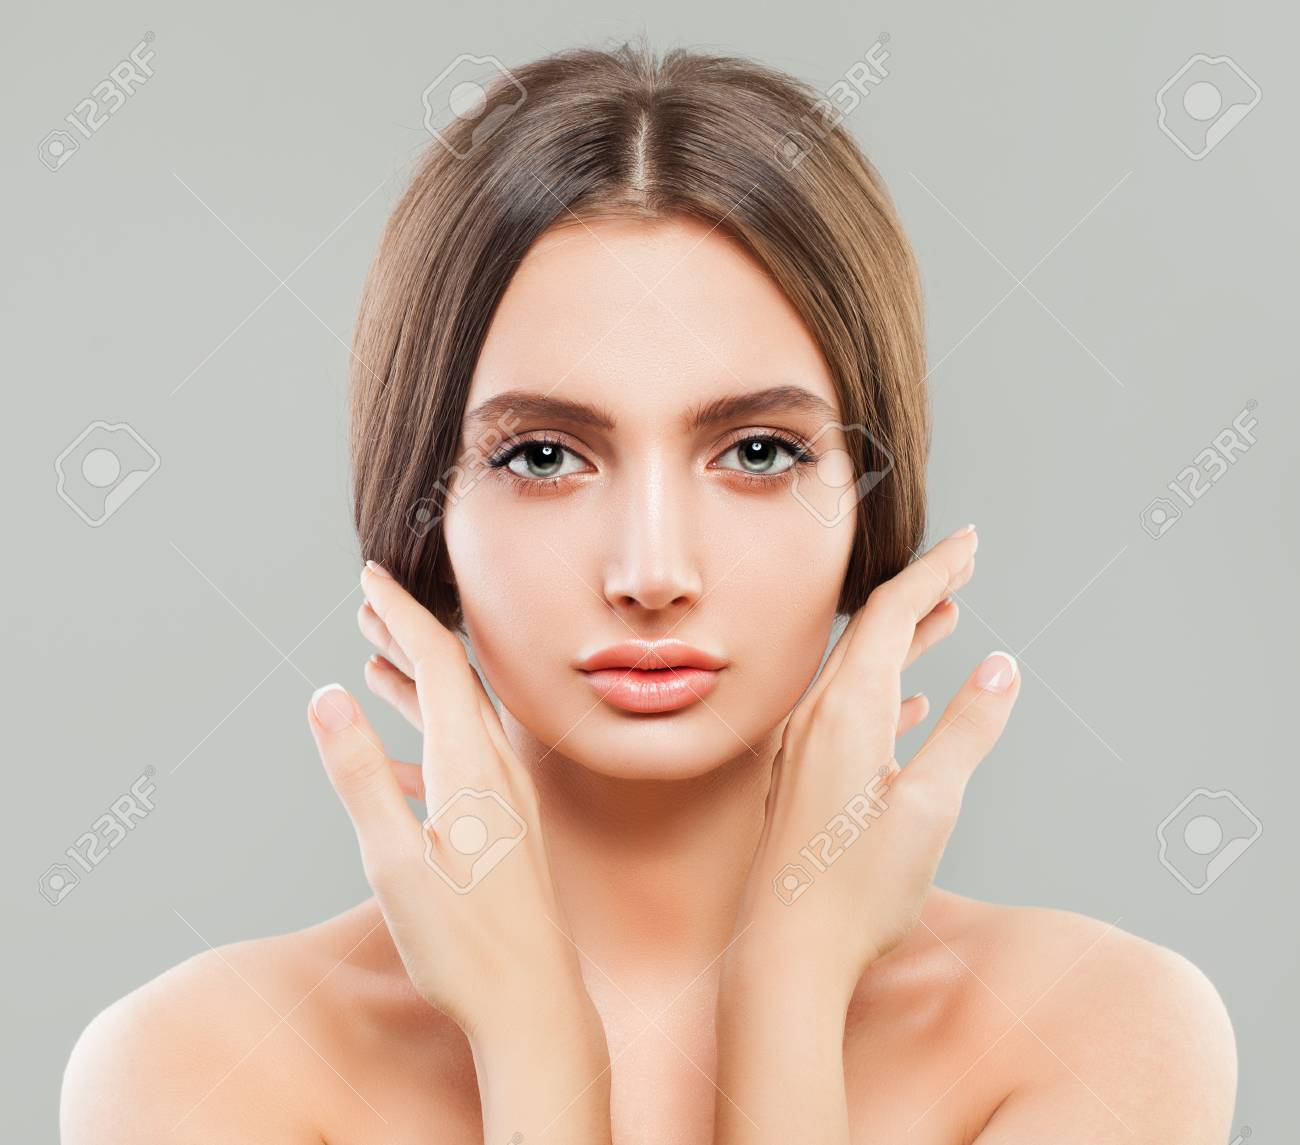 Young Healthy Woman With Clear Skin Manicured Hands Perfect Stock Photo Picture And Royalty Free Image Image 93323578